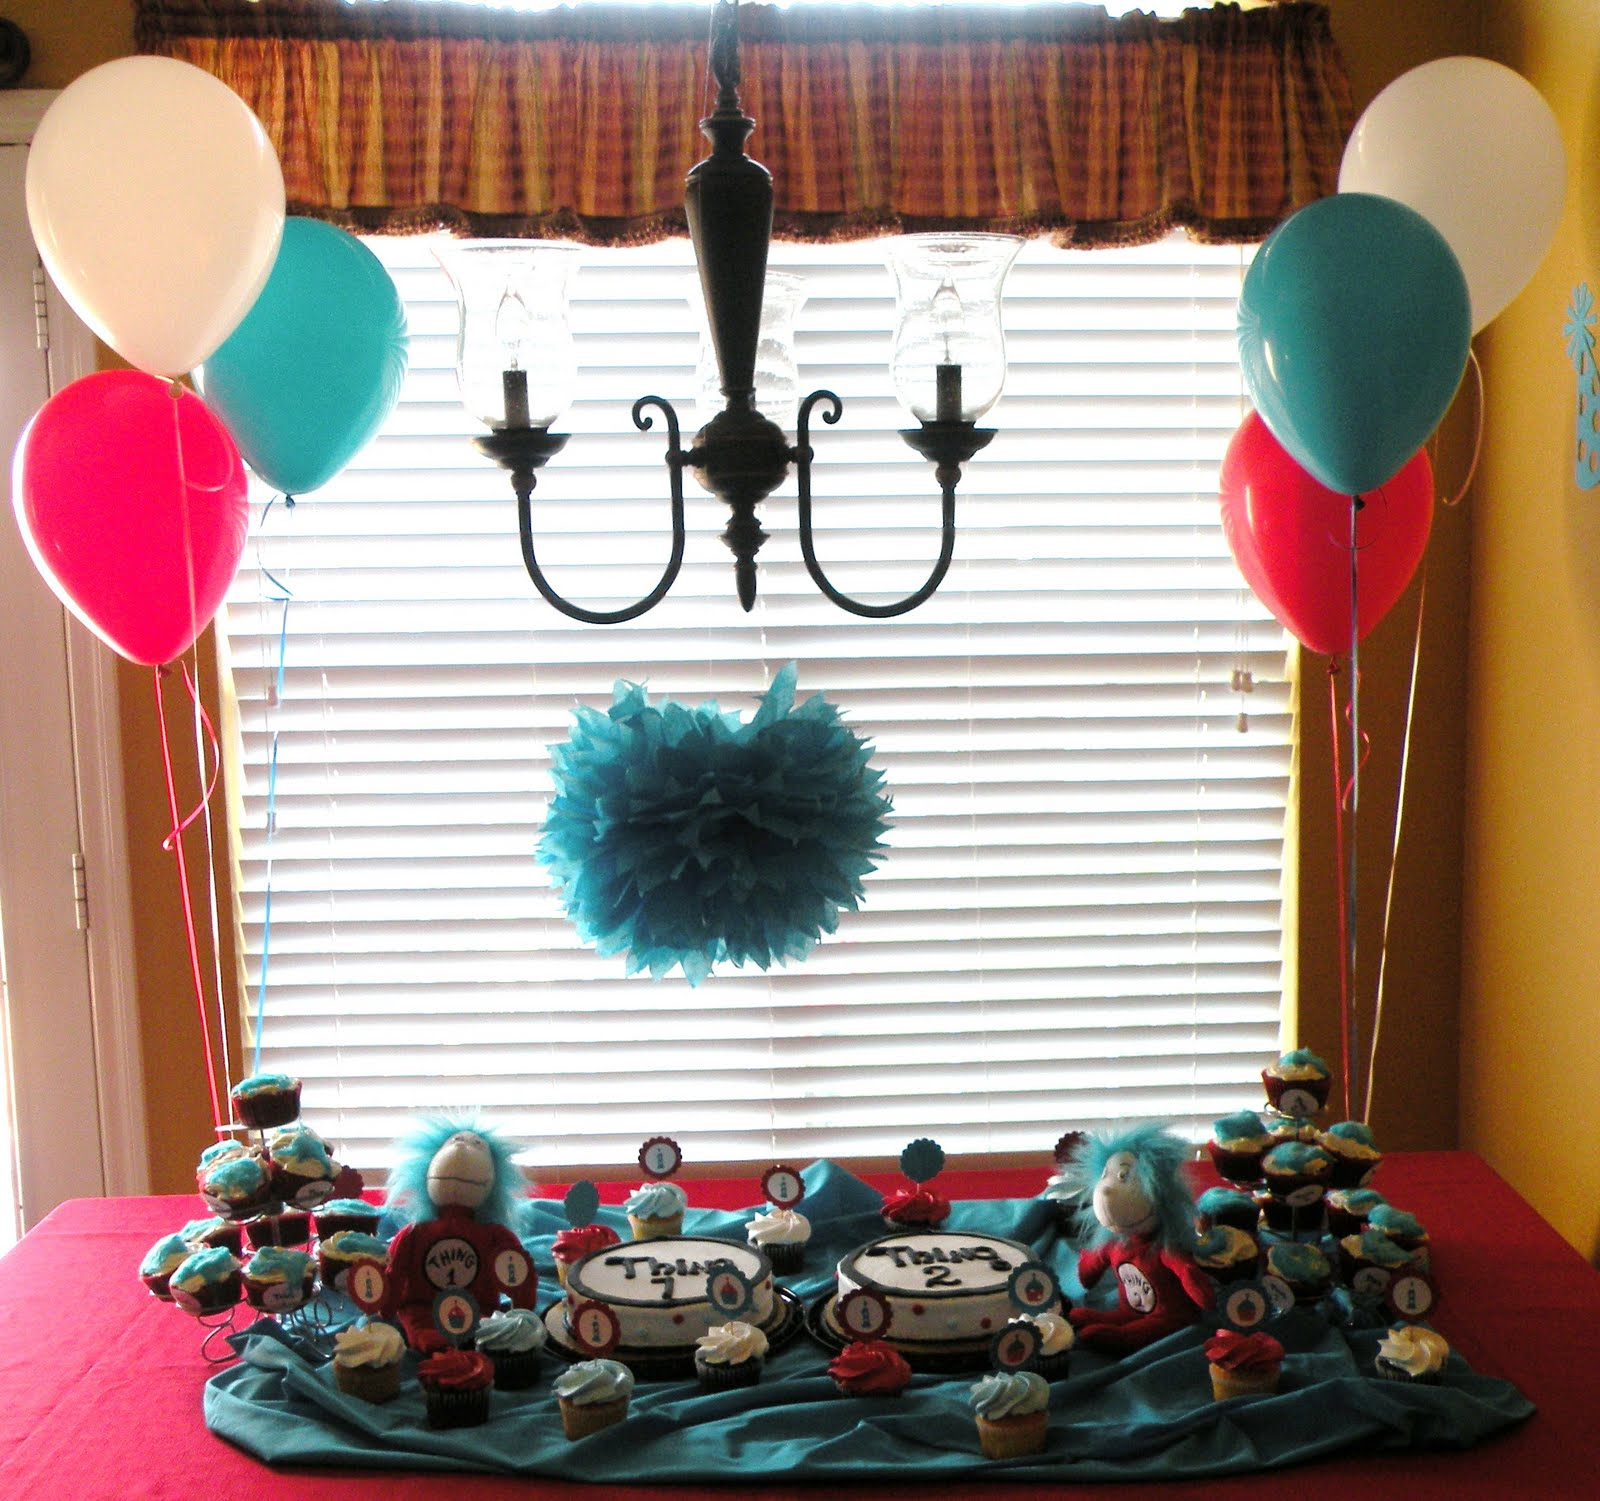 Dr. Seuss Thing 1 & Thing 2 Birthday Party - Giggles Galore